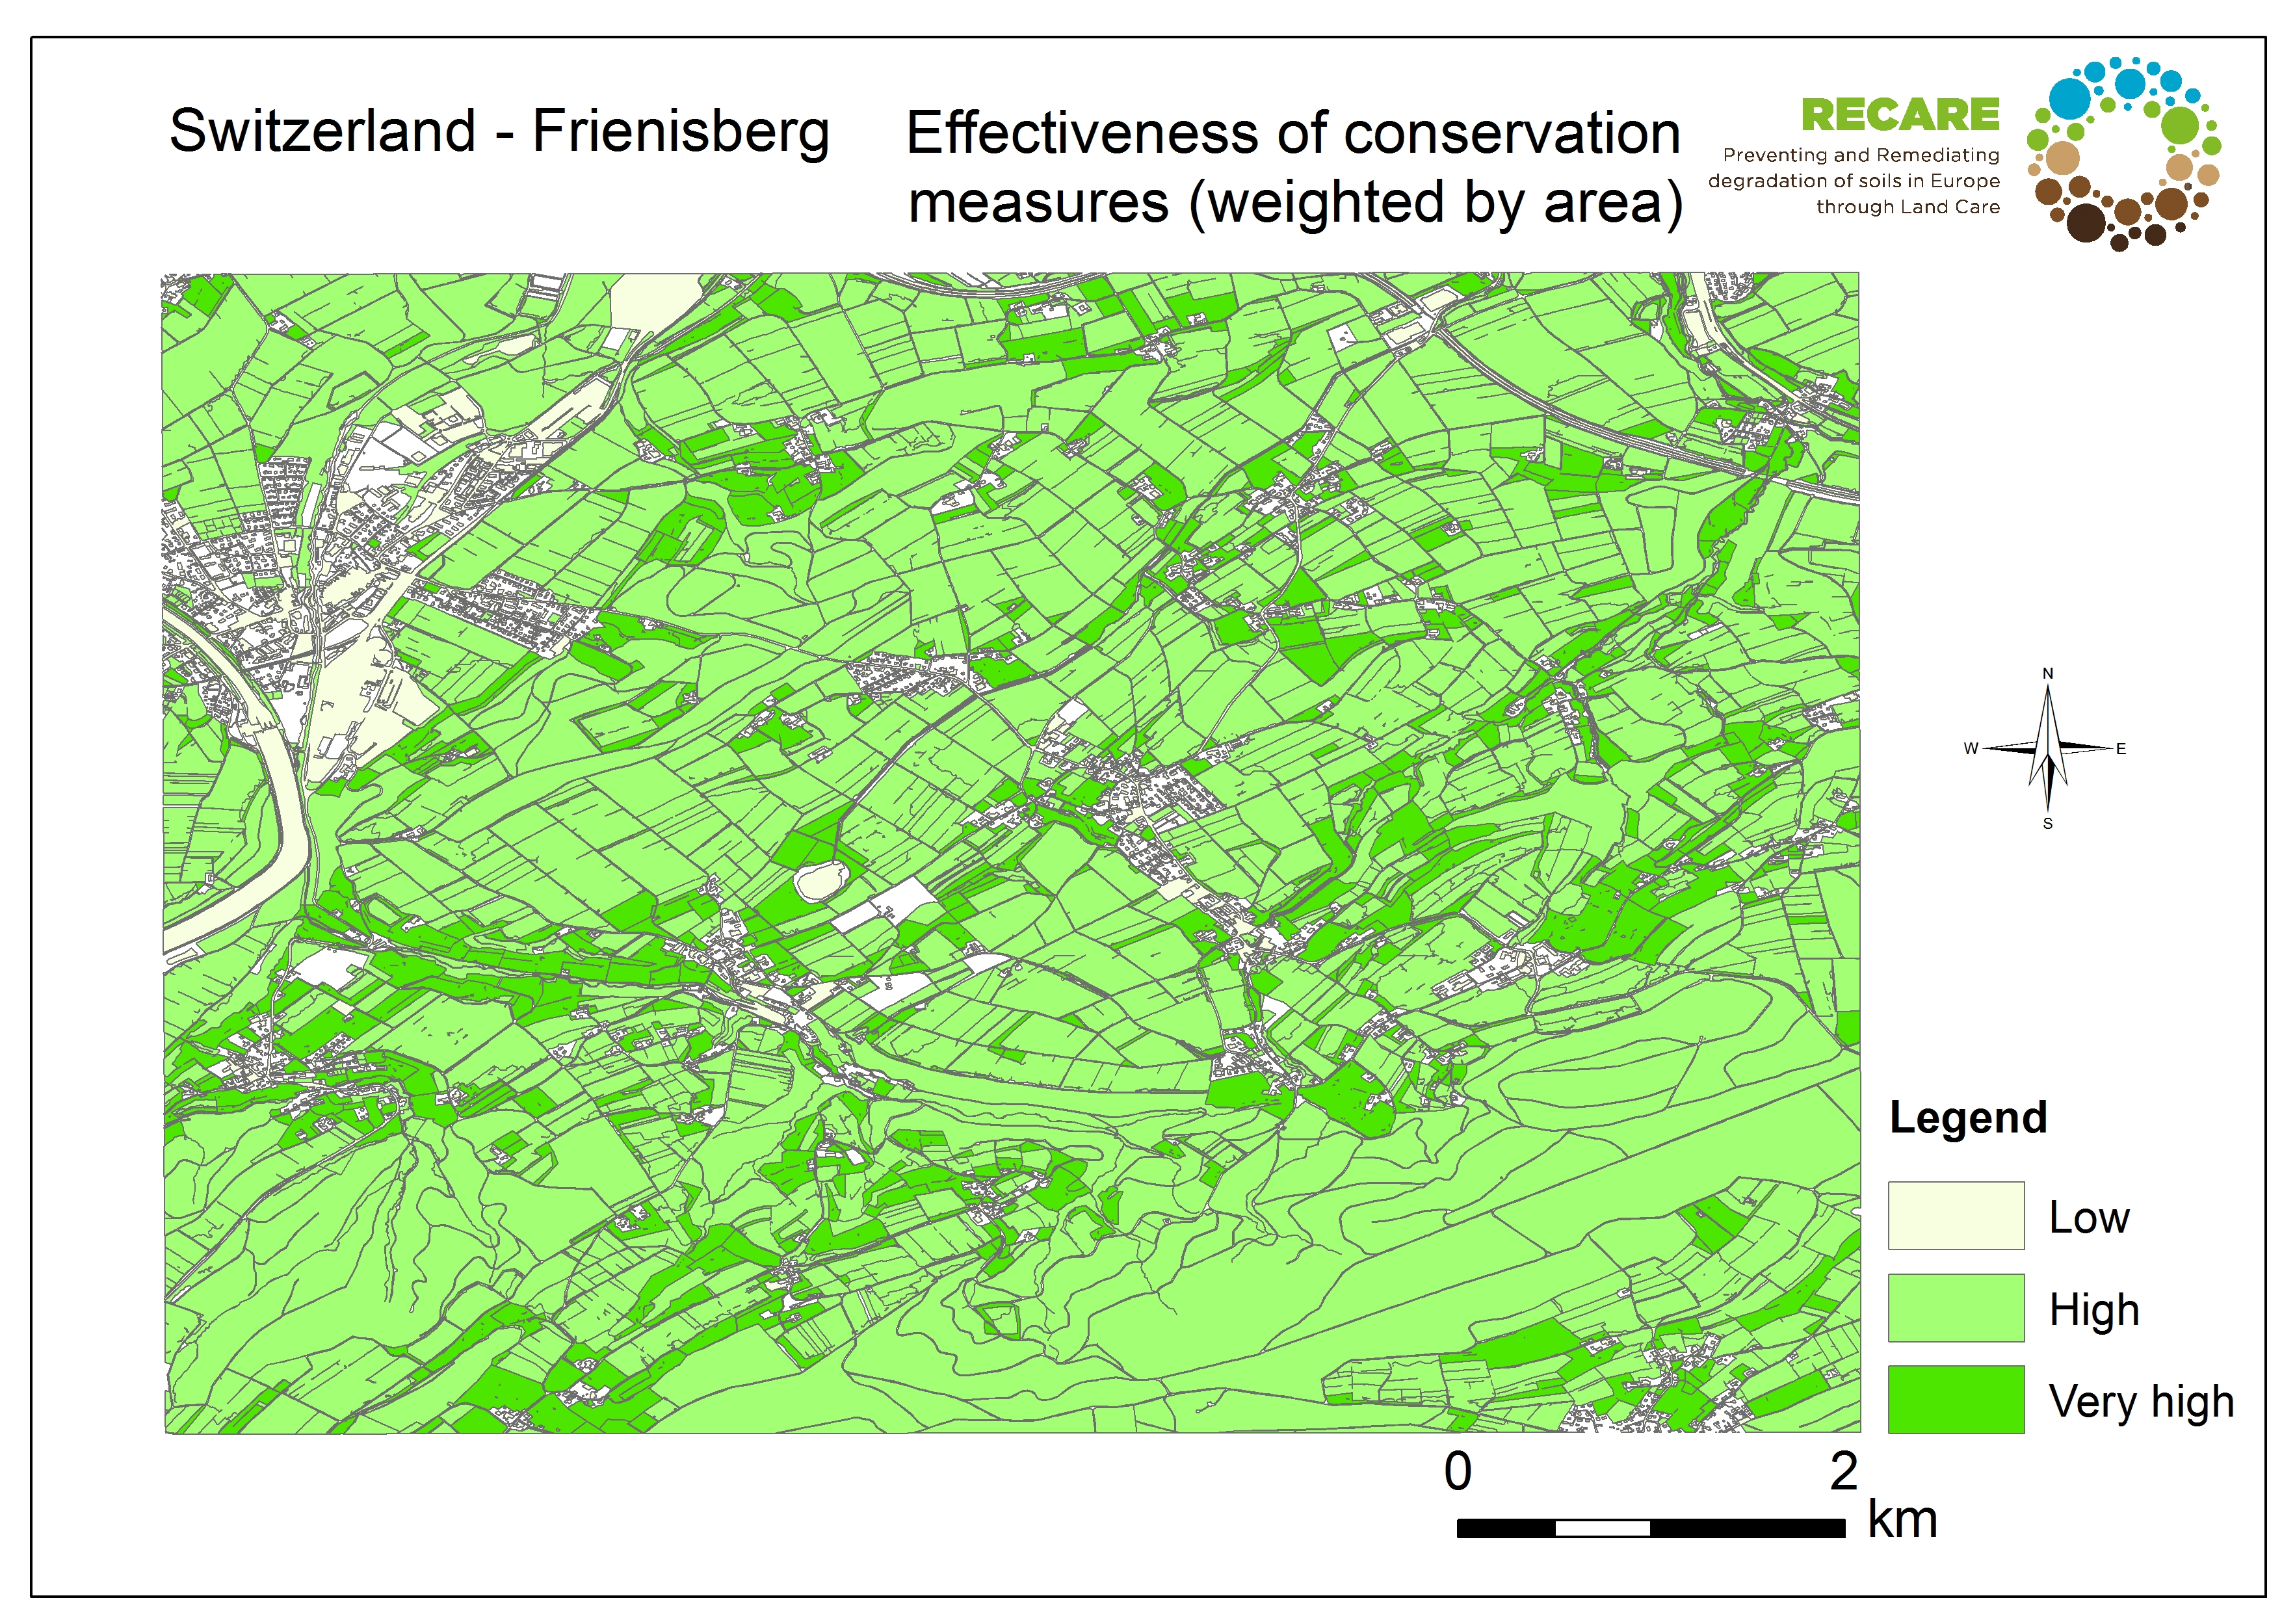 Switzerland Frienisberg effectiveness of conservation measures